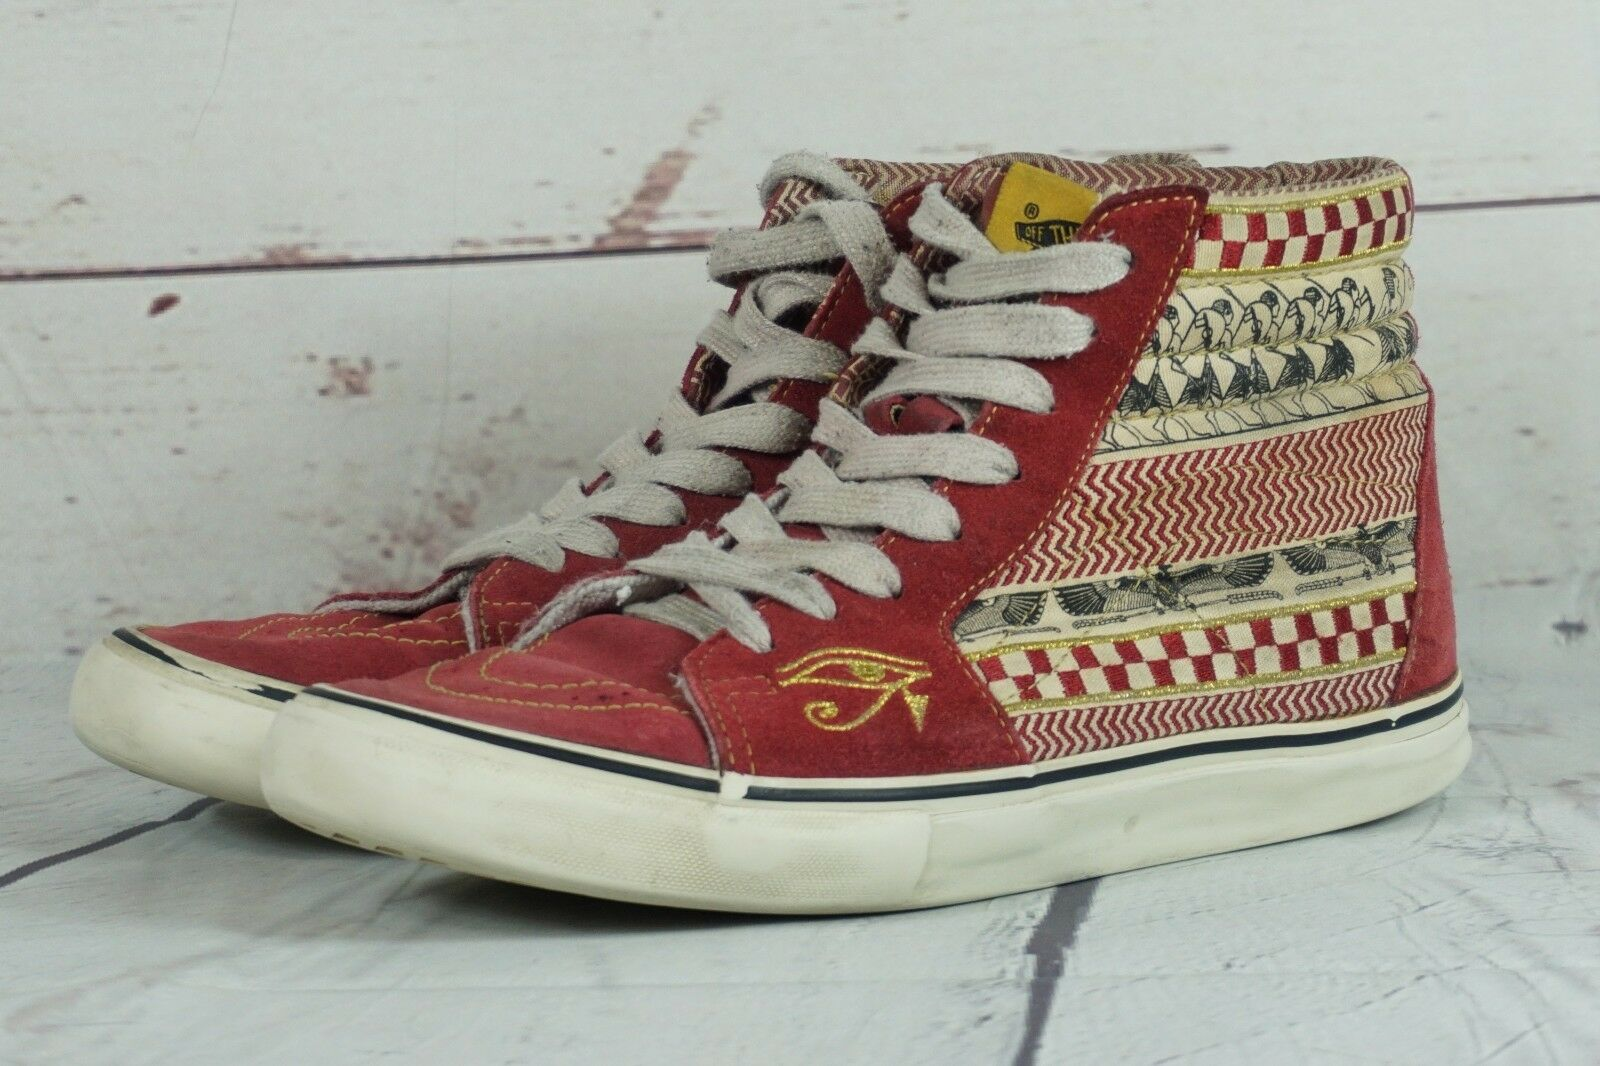 RARE Sneakers Vans Sh8-Hi Egyptian Warrior Size 8